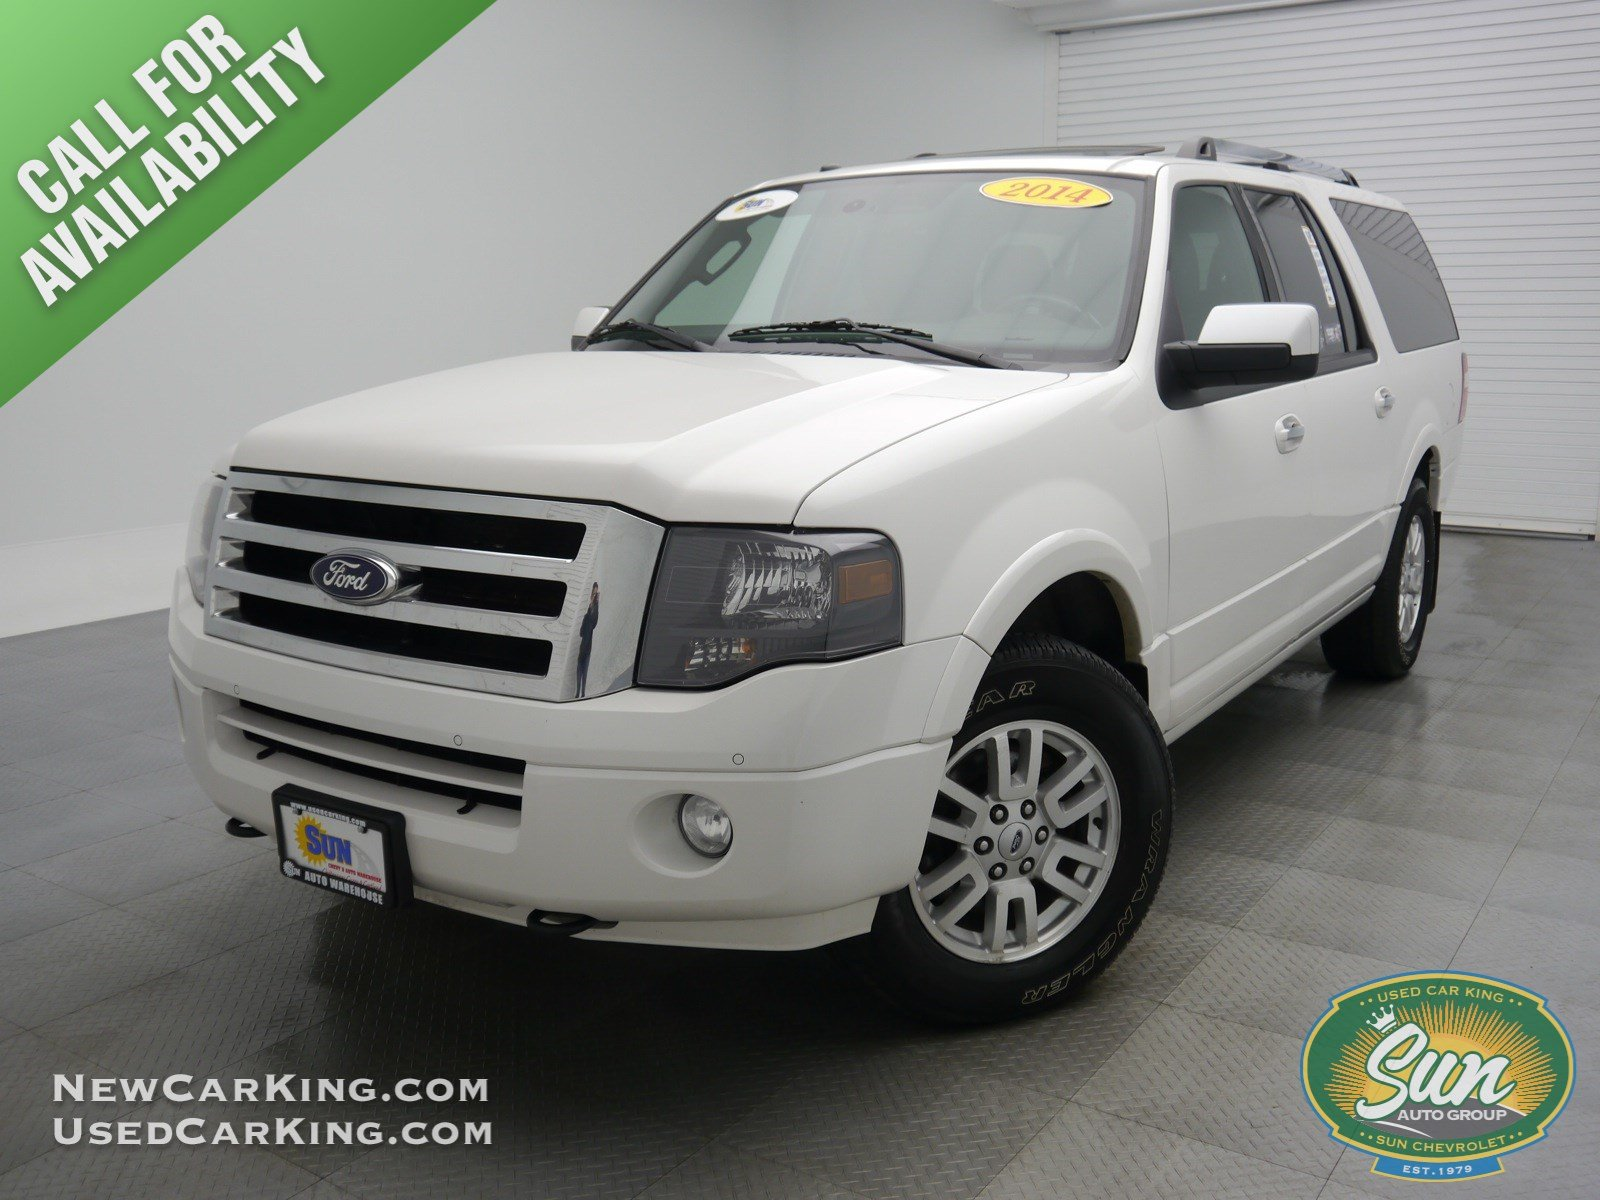 limited used suv htm ford expedition for wa near sale seattle snohomish